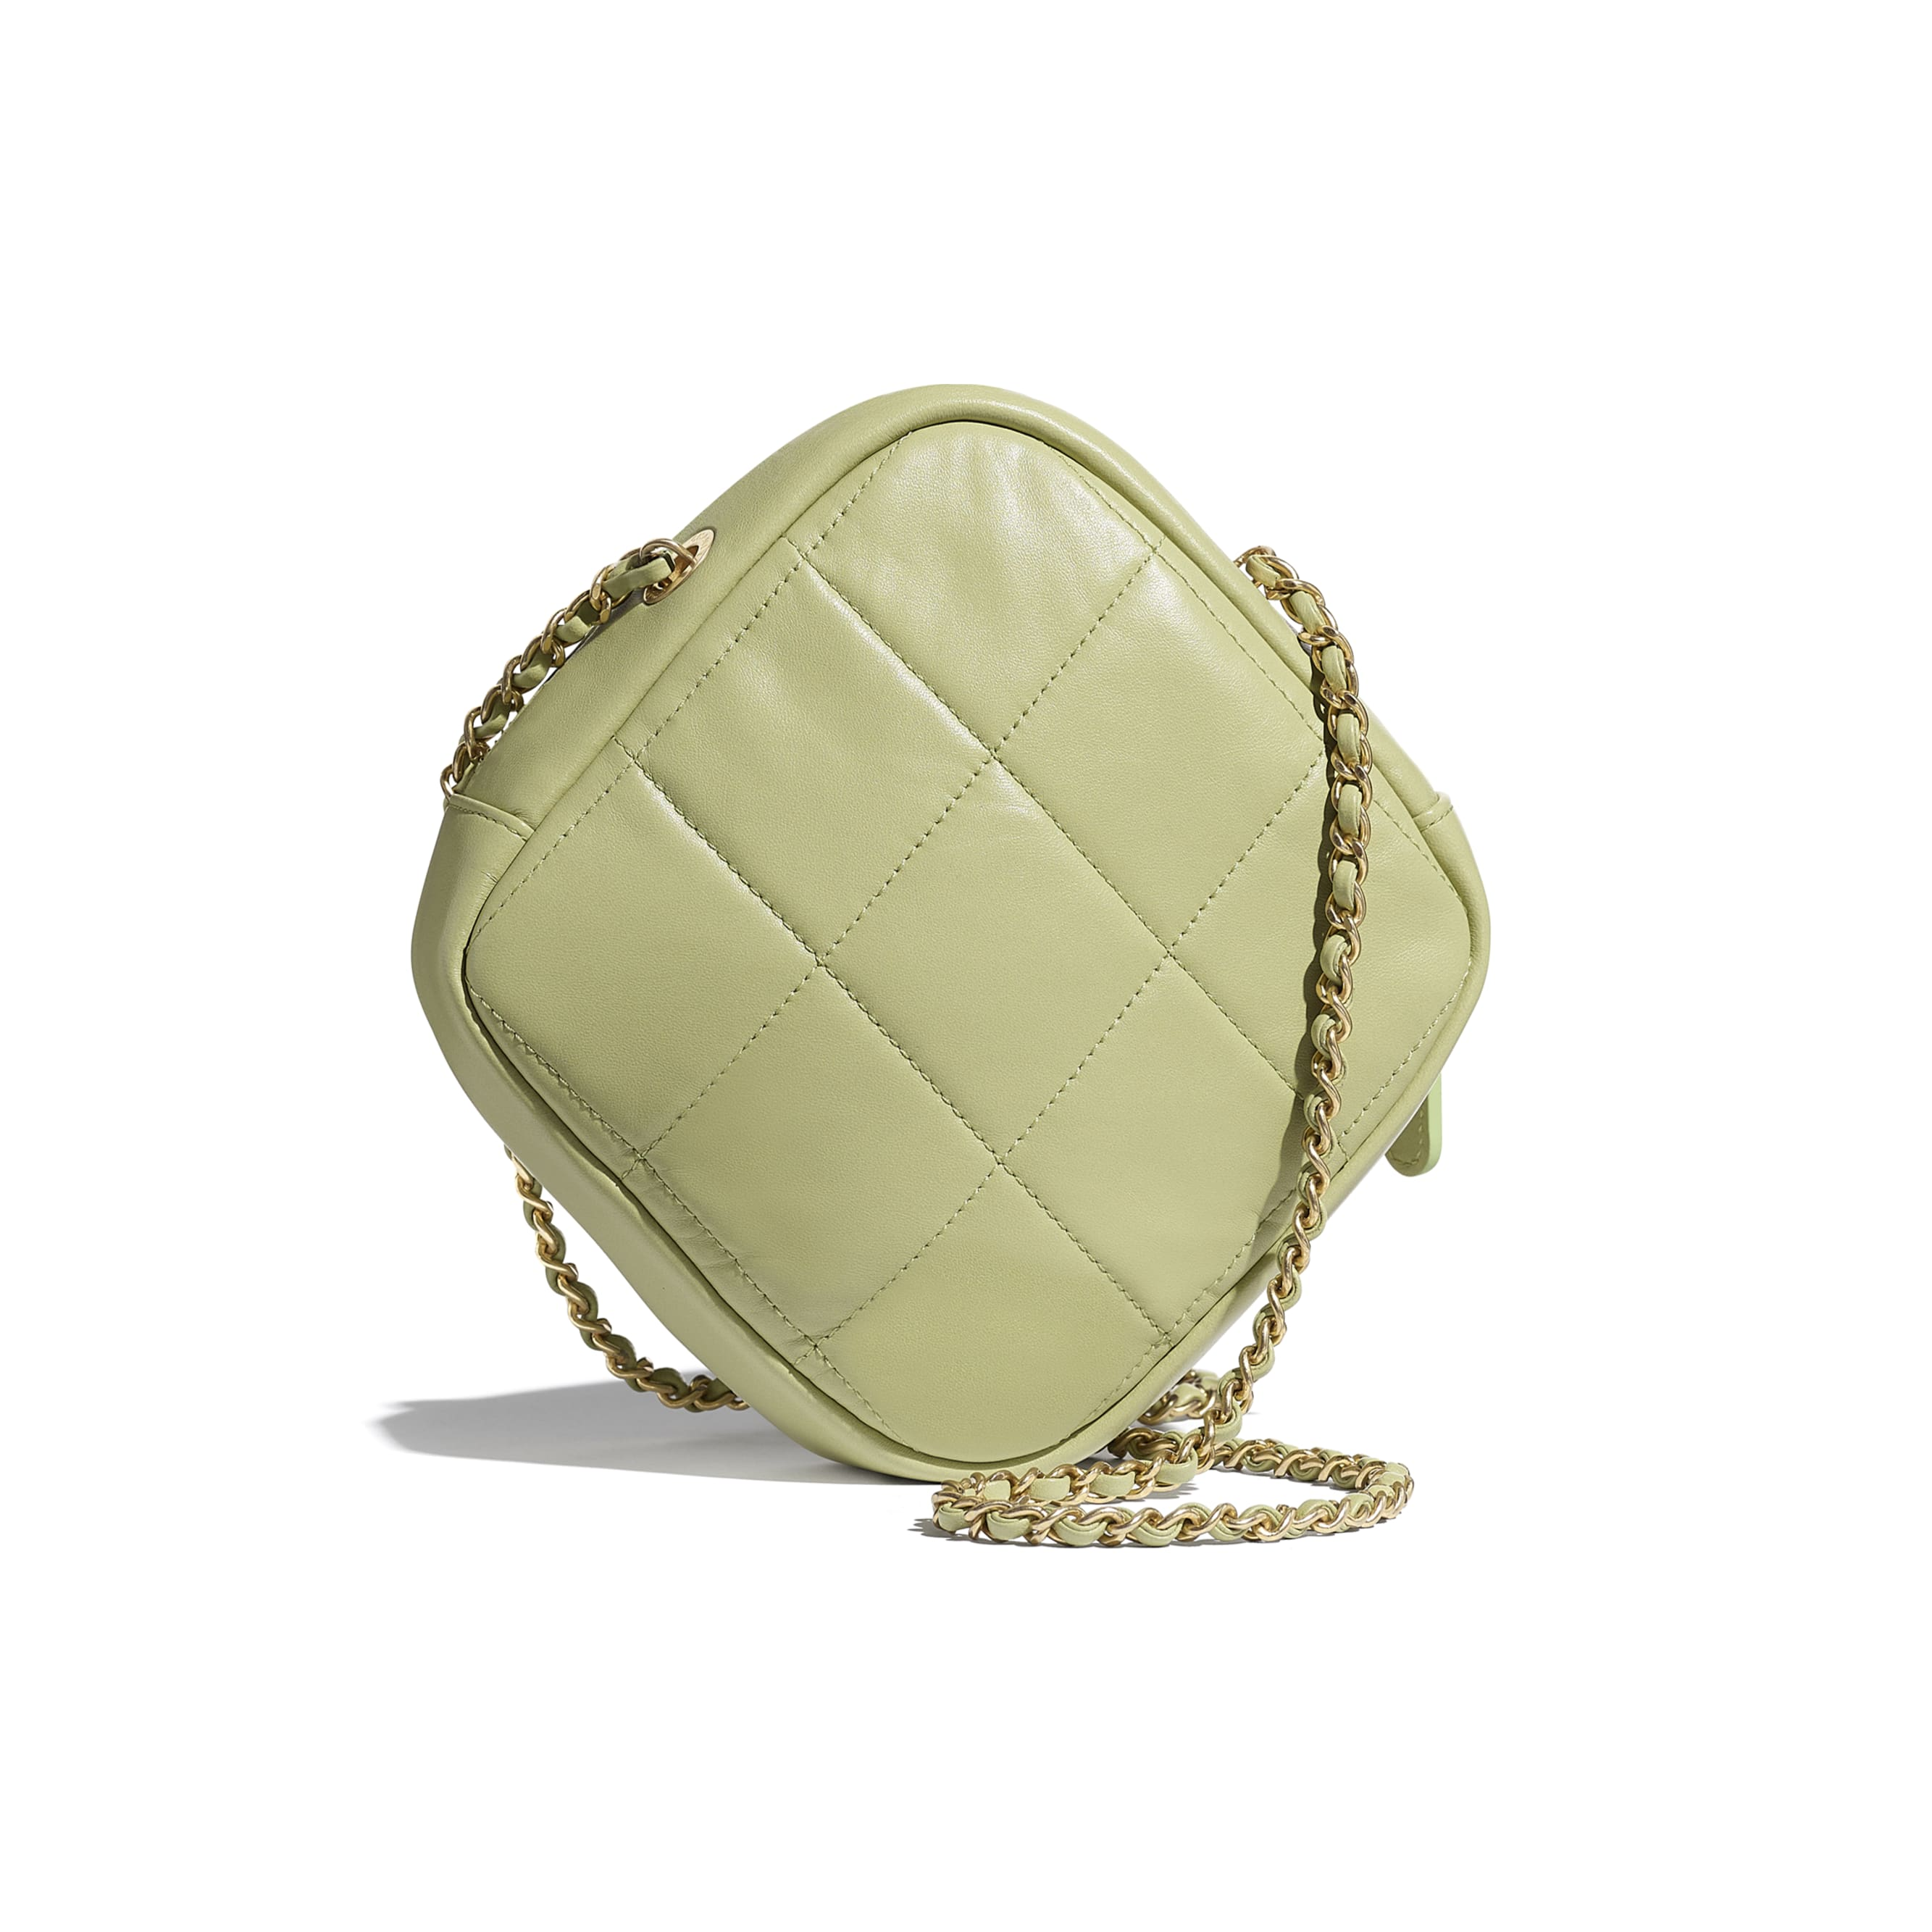 Small Diamond Bag - Green - Lambskin - CHANEL - Alternative view - see standard sized version